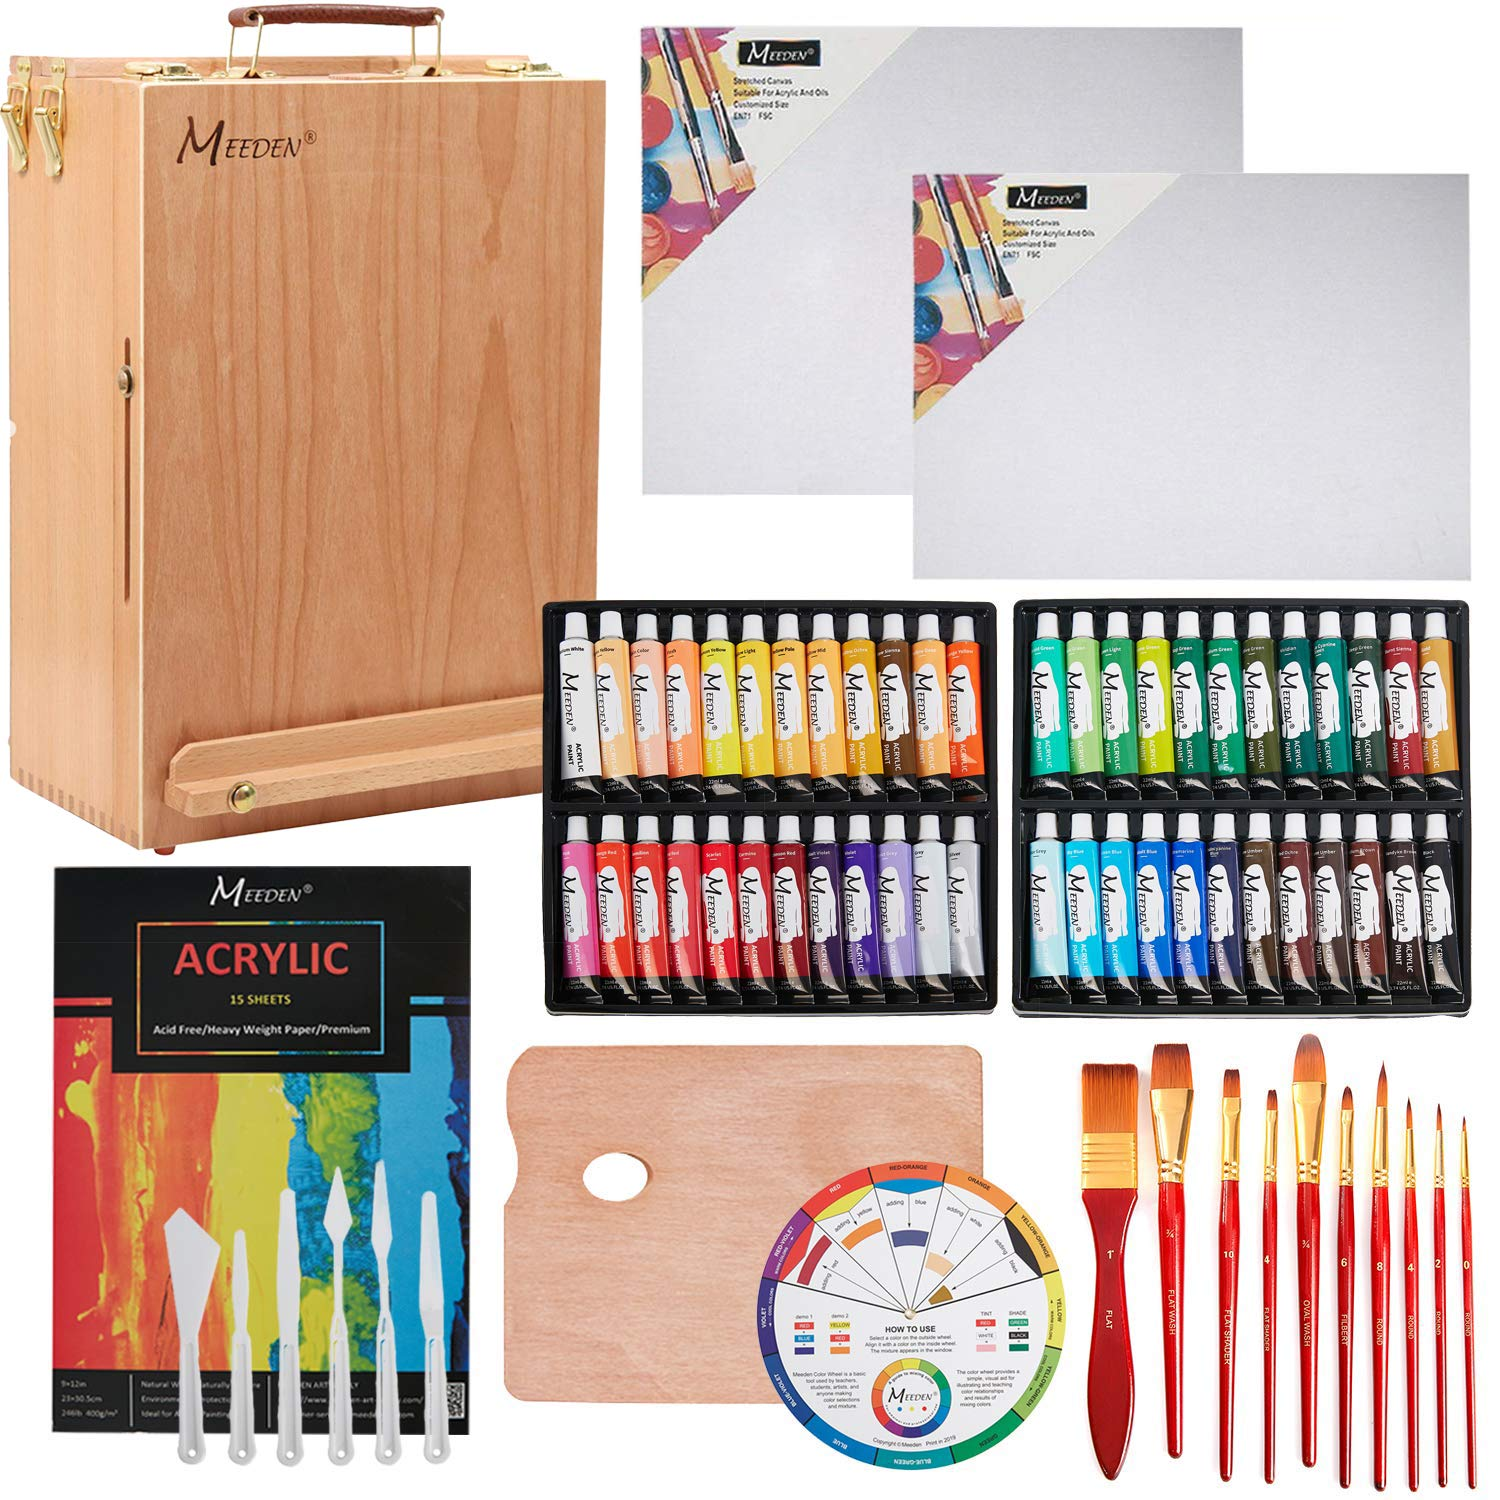 MEEDEN 70-Piece Premium Acrylic Painting Set - Solid Beech Wood Easel box, 48 Colors Acrylic Paint (22ml) and All The Additional Supplies, Perfect Gifts for Beginning Artists, Students and Kids by MEEDEN